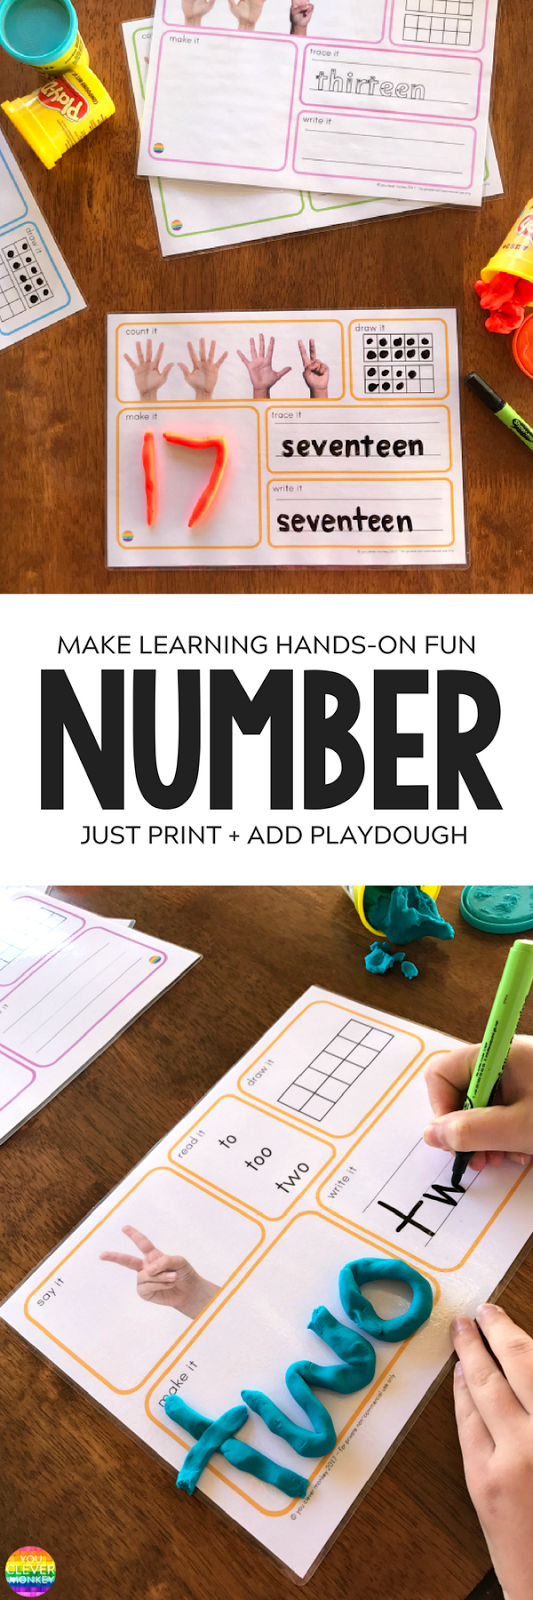 Printable Number Playdough Mats | you clever monkey